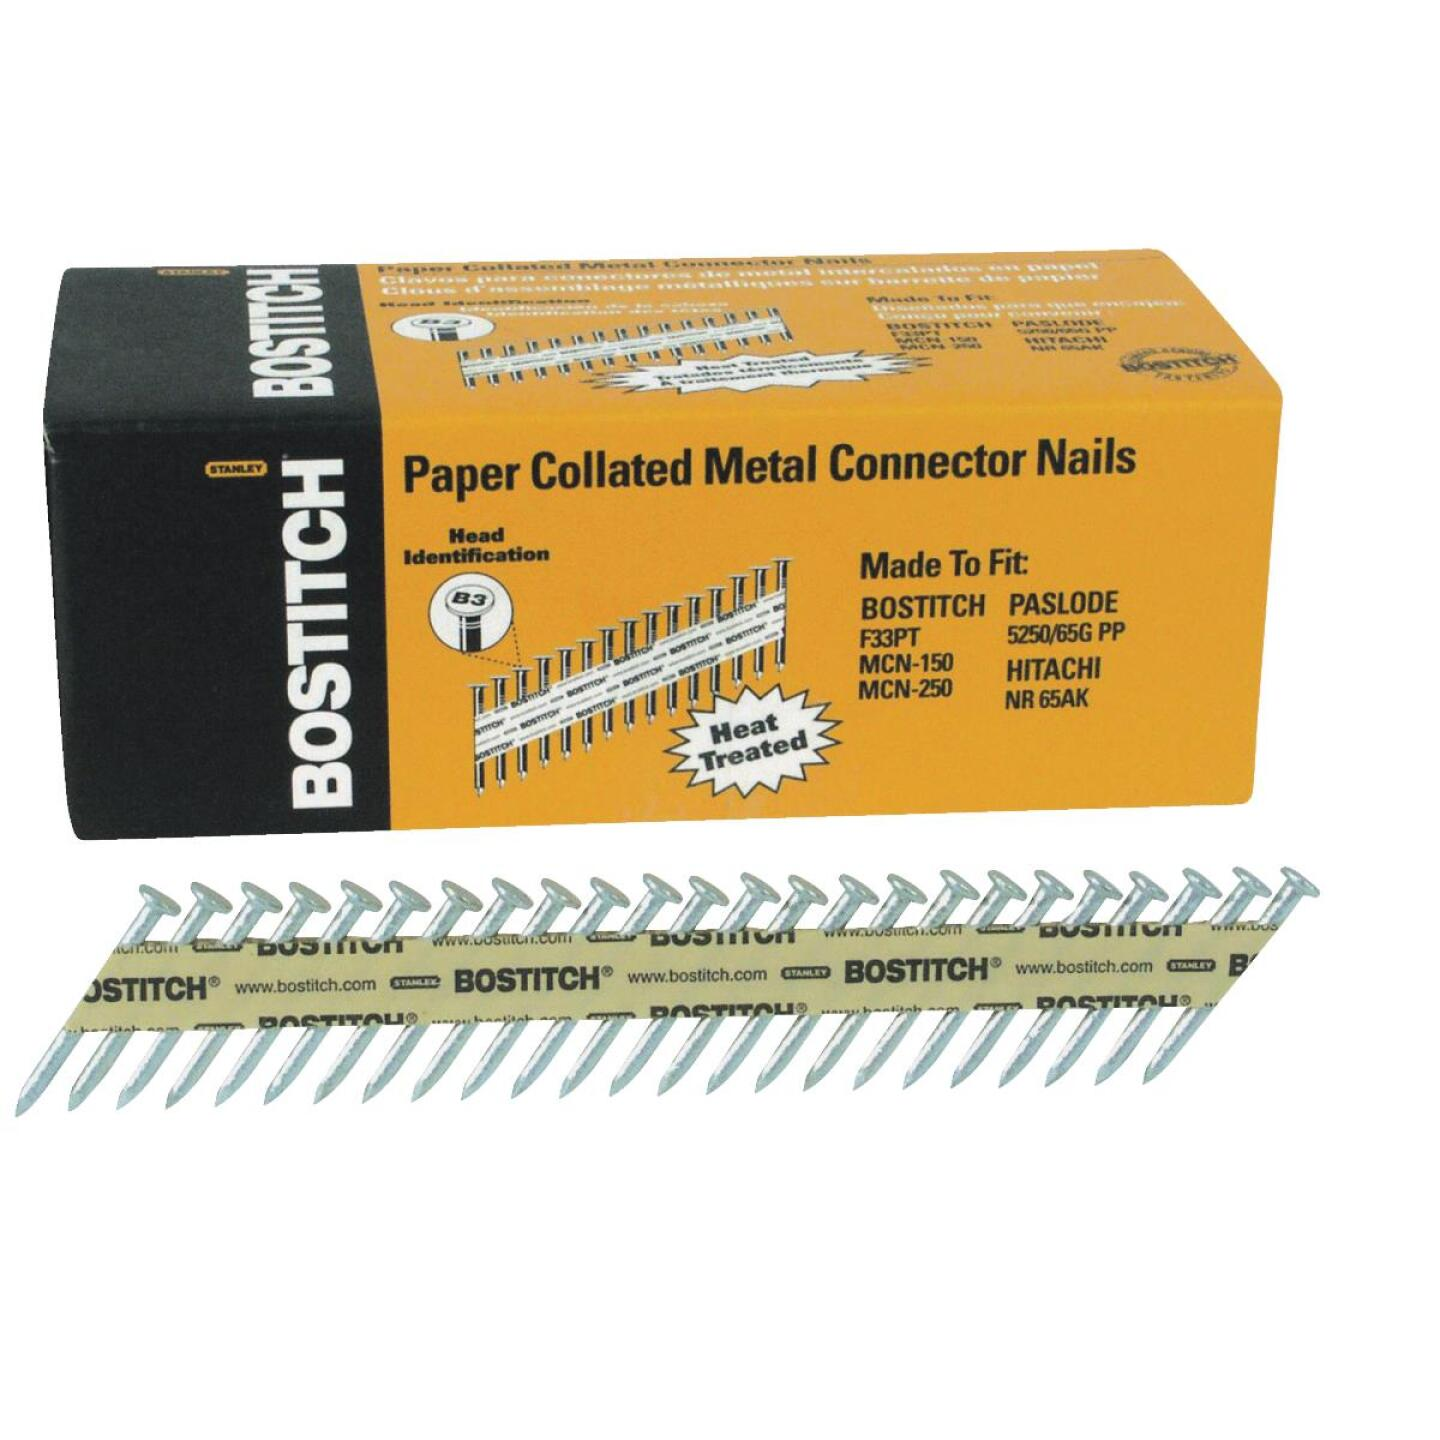 Bostitch 35 Degree Paper Tape Hot-Dipped Galvanized MCN Connector Nail, 1-1/2 In. x .131 In. (1000 Ct.) Image 1